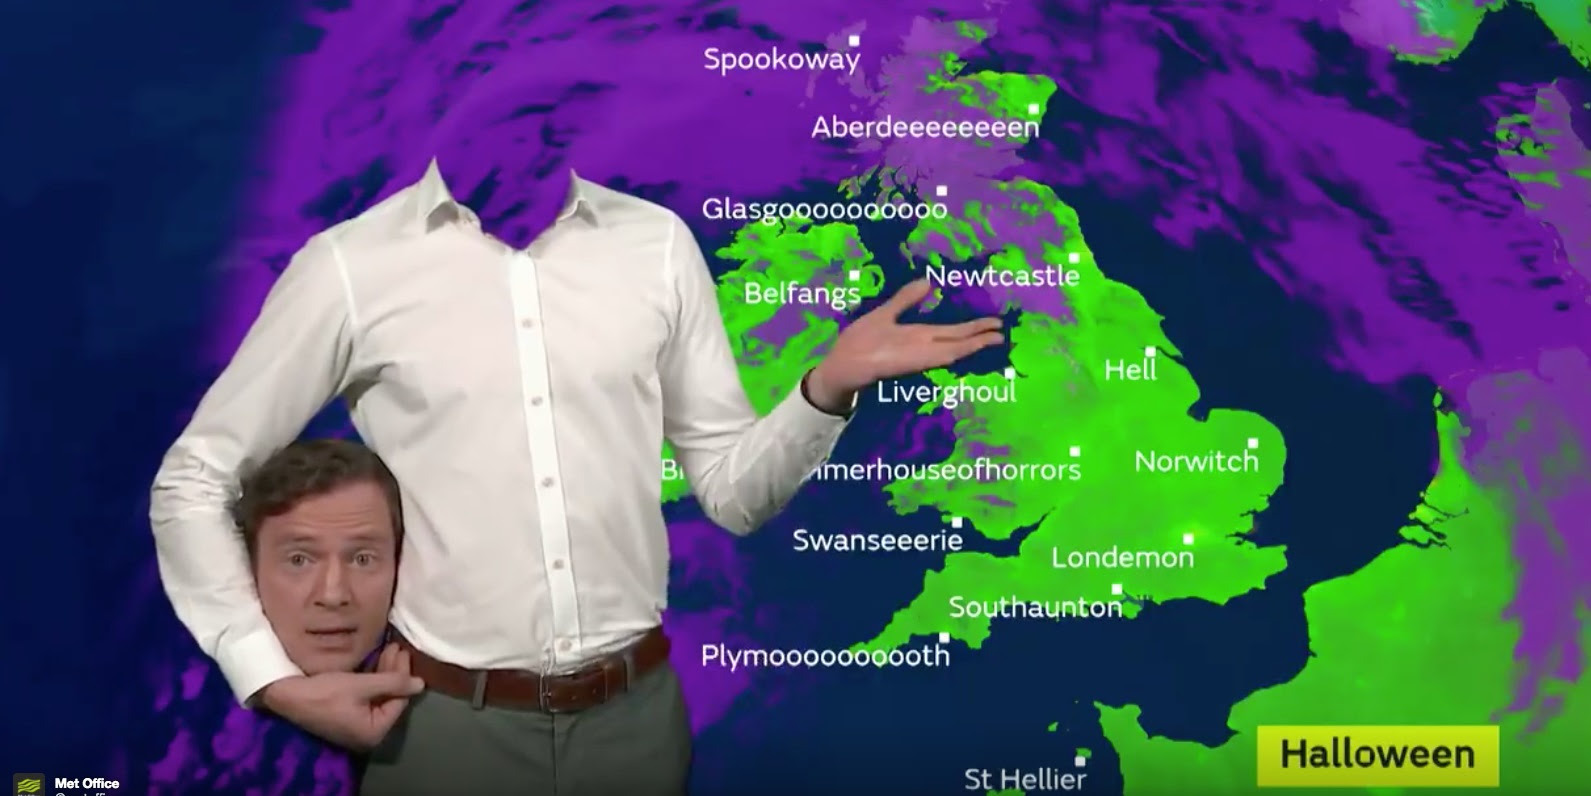 Weather Presenter 'Without Head' Causes Panic During Live Broadcast (Photo+Video)